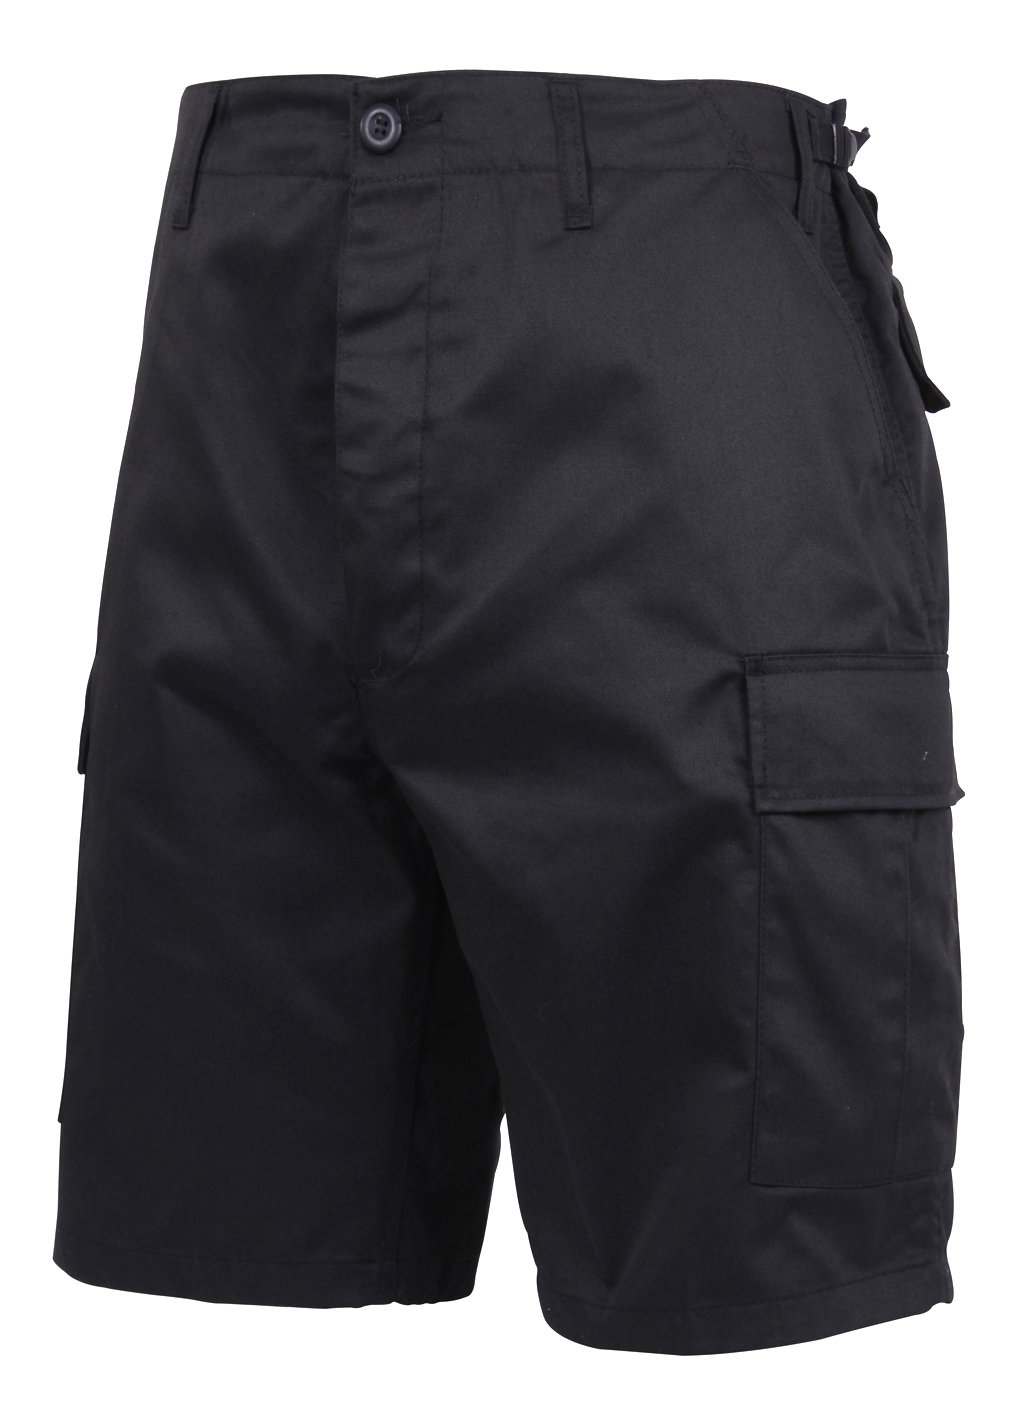 Rothco Men's Ultra Force Military Style BDU Combat Shorts, Black, Medium Regular (Waist:31'' to 35'')